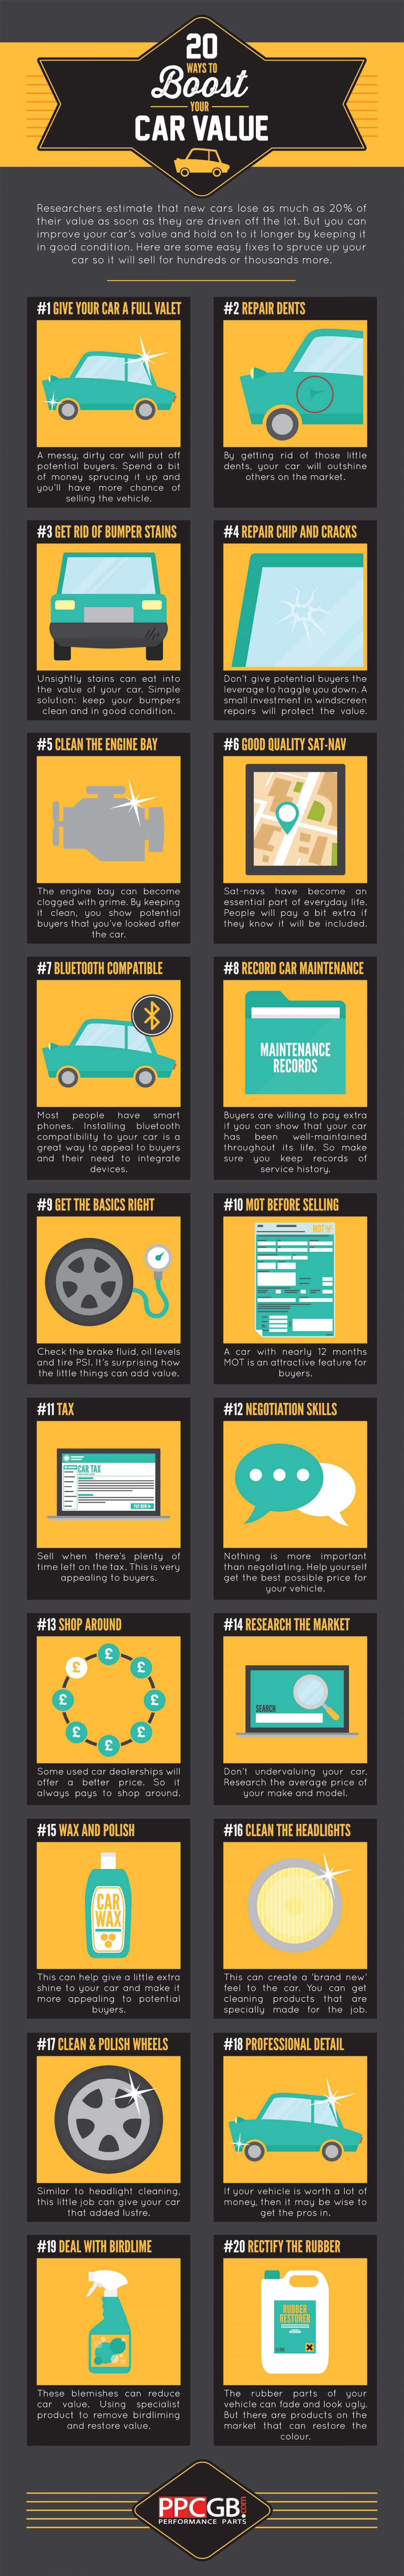 20 ways to boost your car value infographic cars transportation